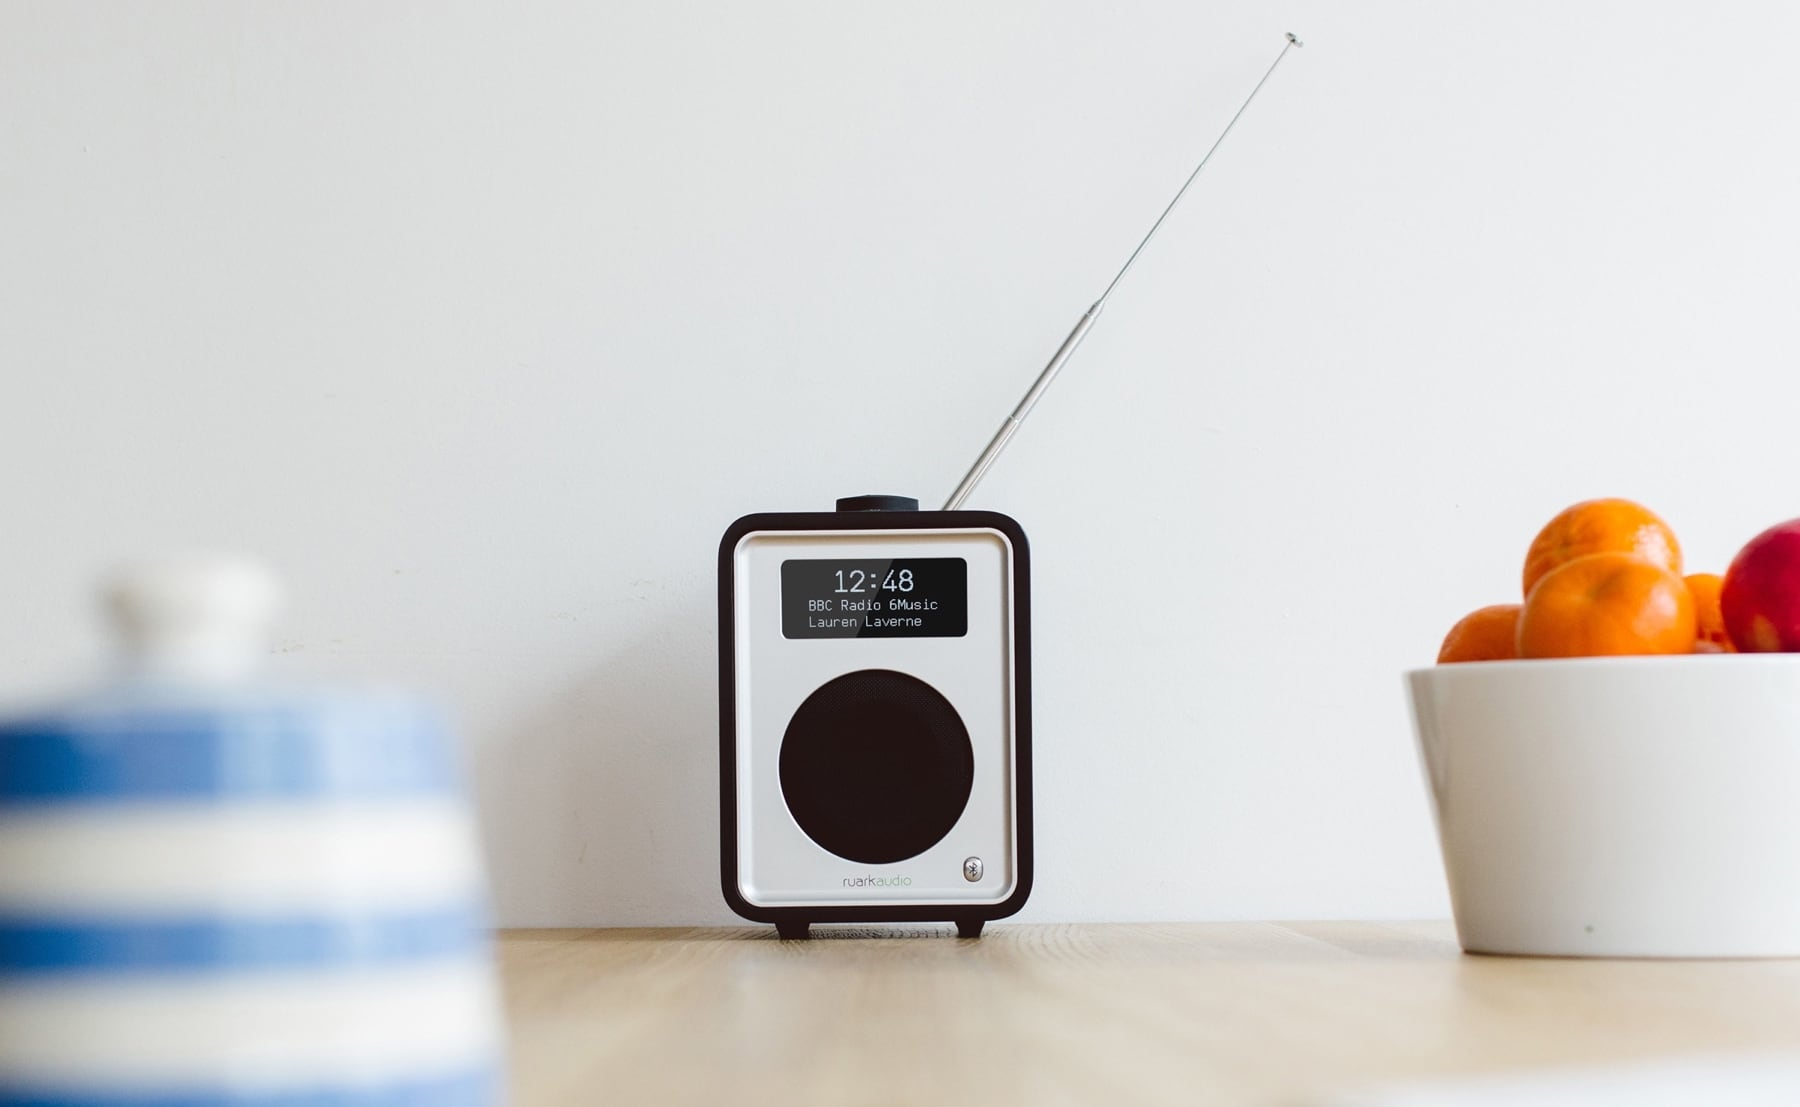 Ruark Audio R1 Deluxe Bluetooth Radio DAB OLED Stereo provides a simple, informative display